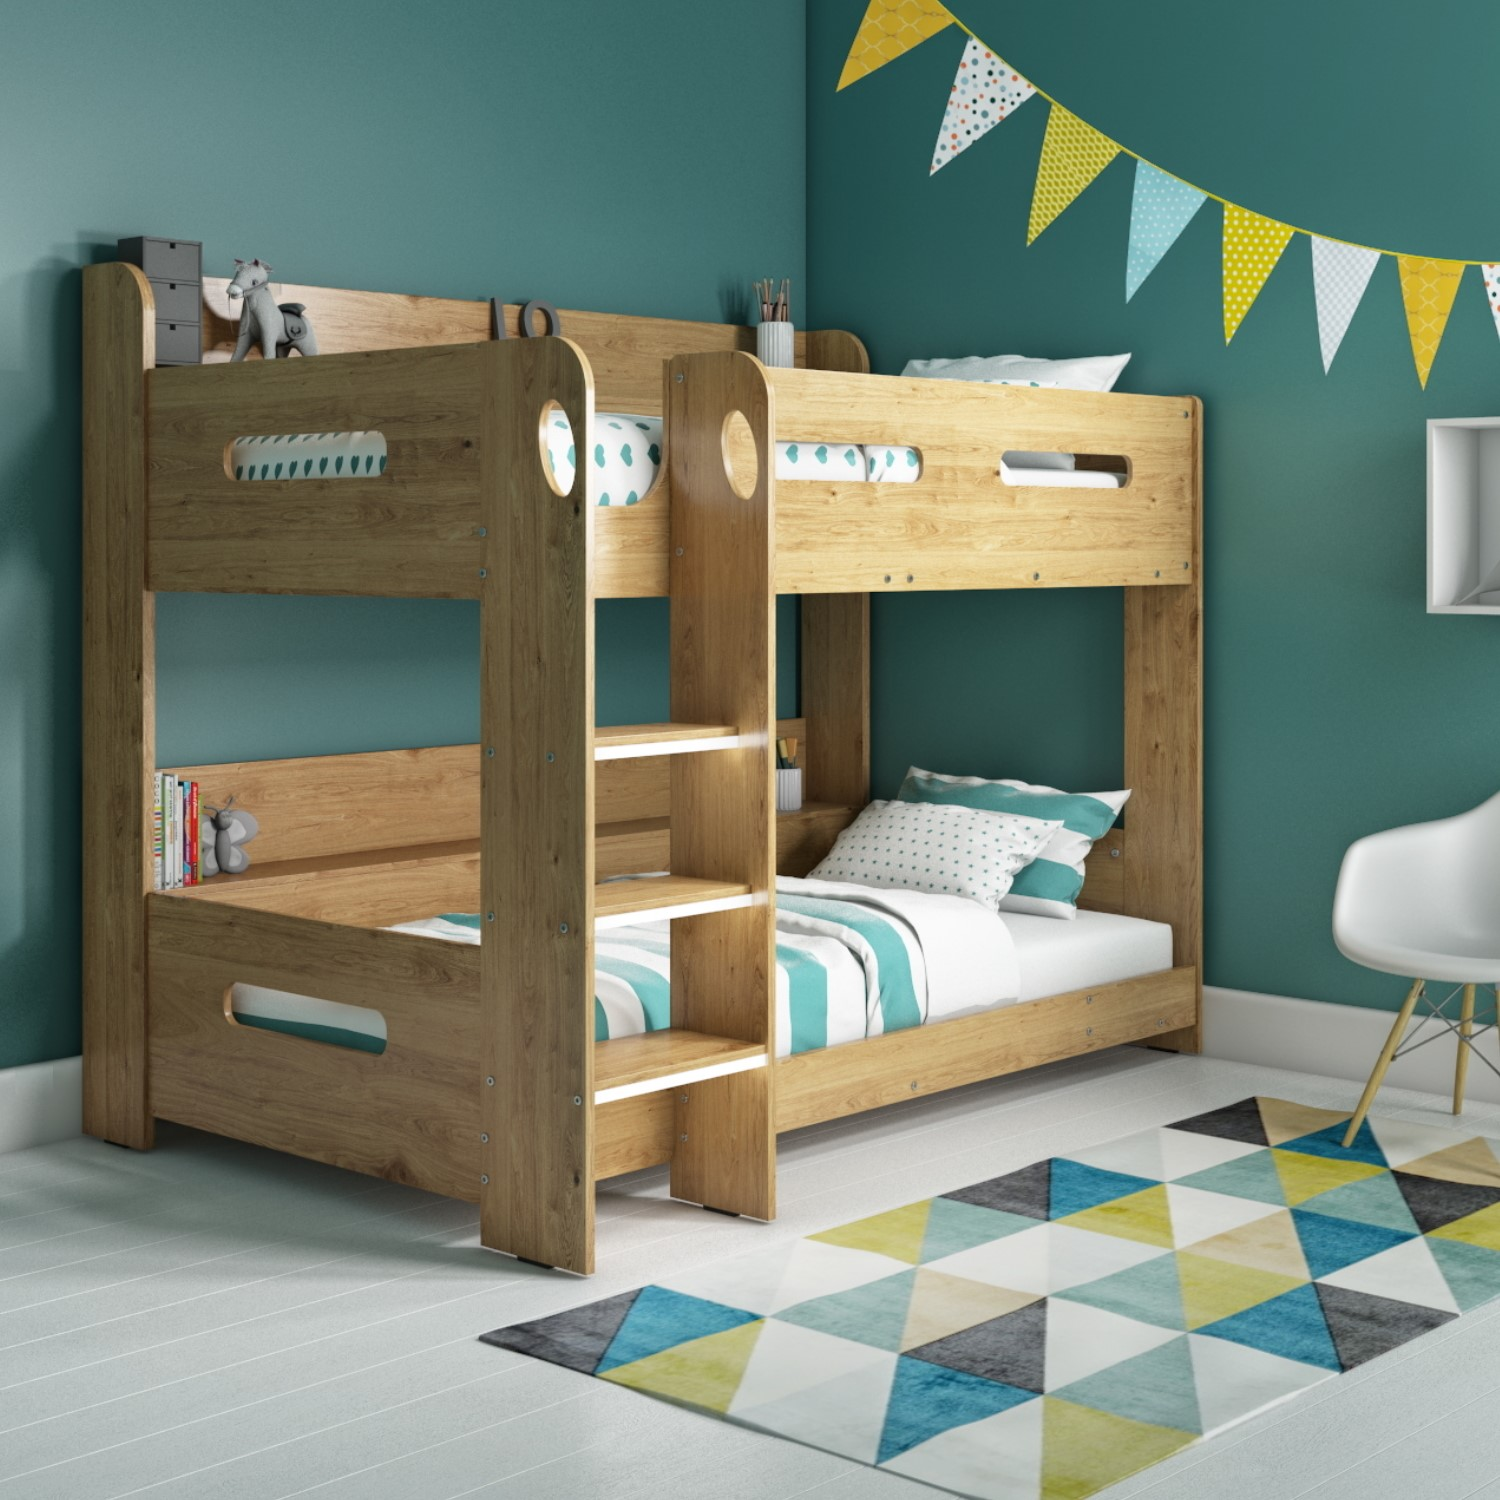 modern kids oak bunk bed storage shelves 5060388566913 ebay. Black Bedroom Furniture Sets. Home Design Ideas